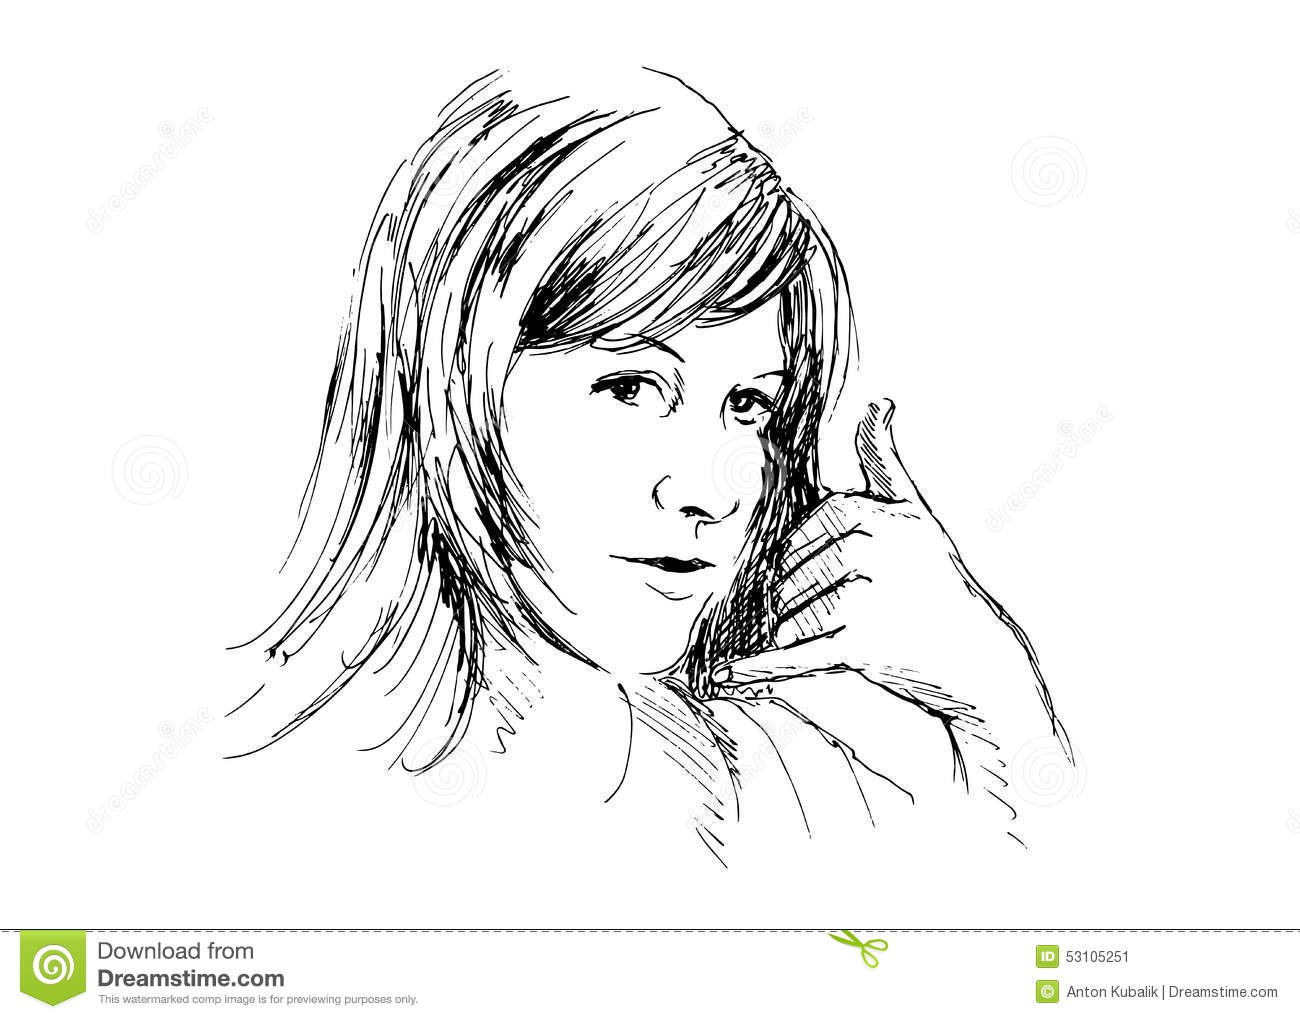 Women to call me gesture stock vector. Illustration of